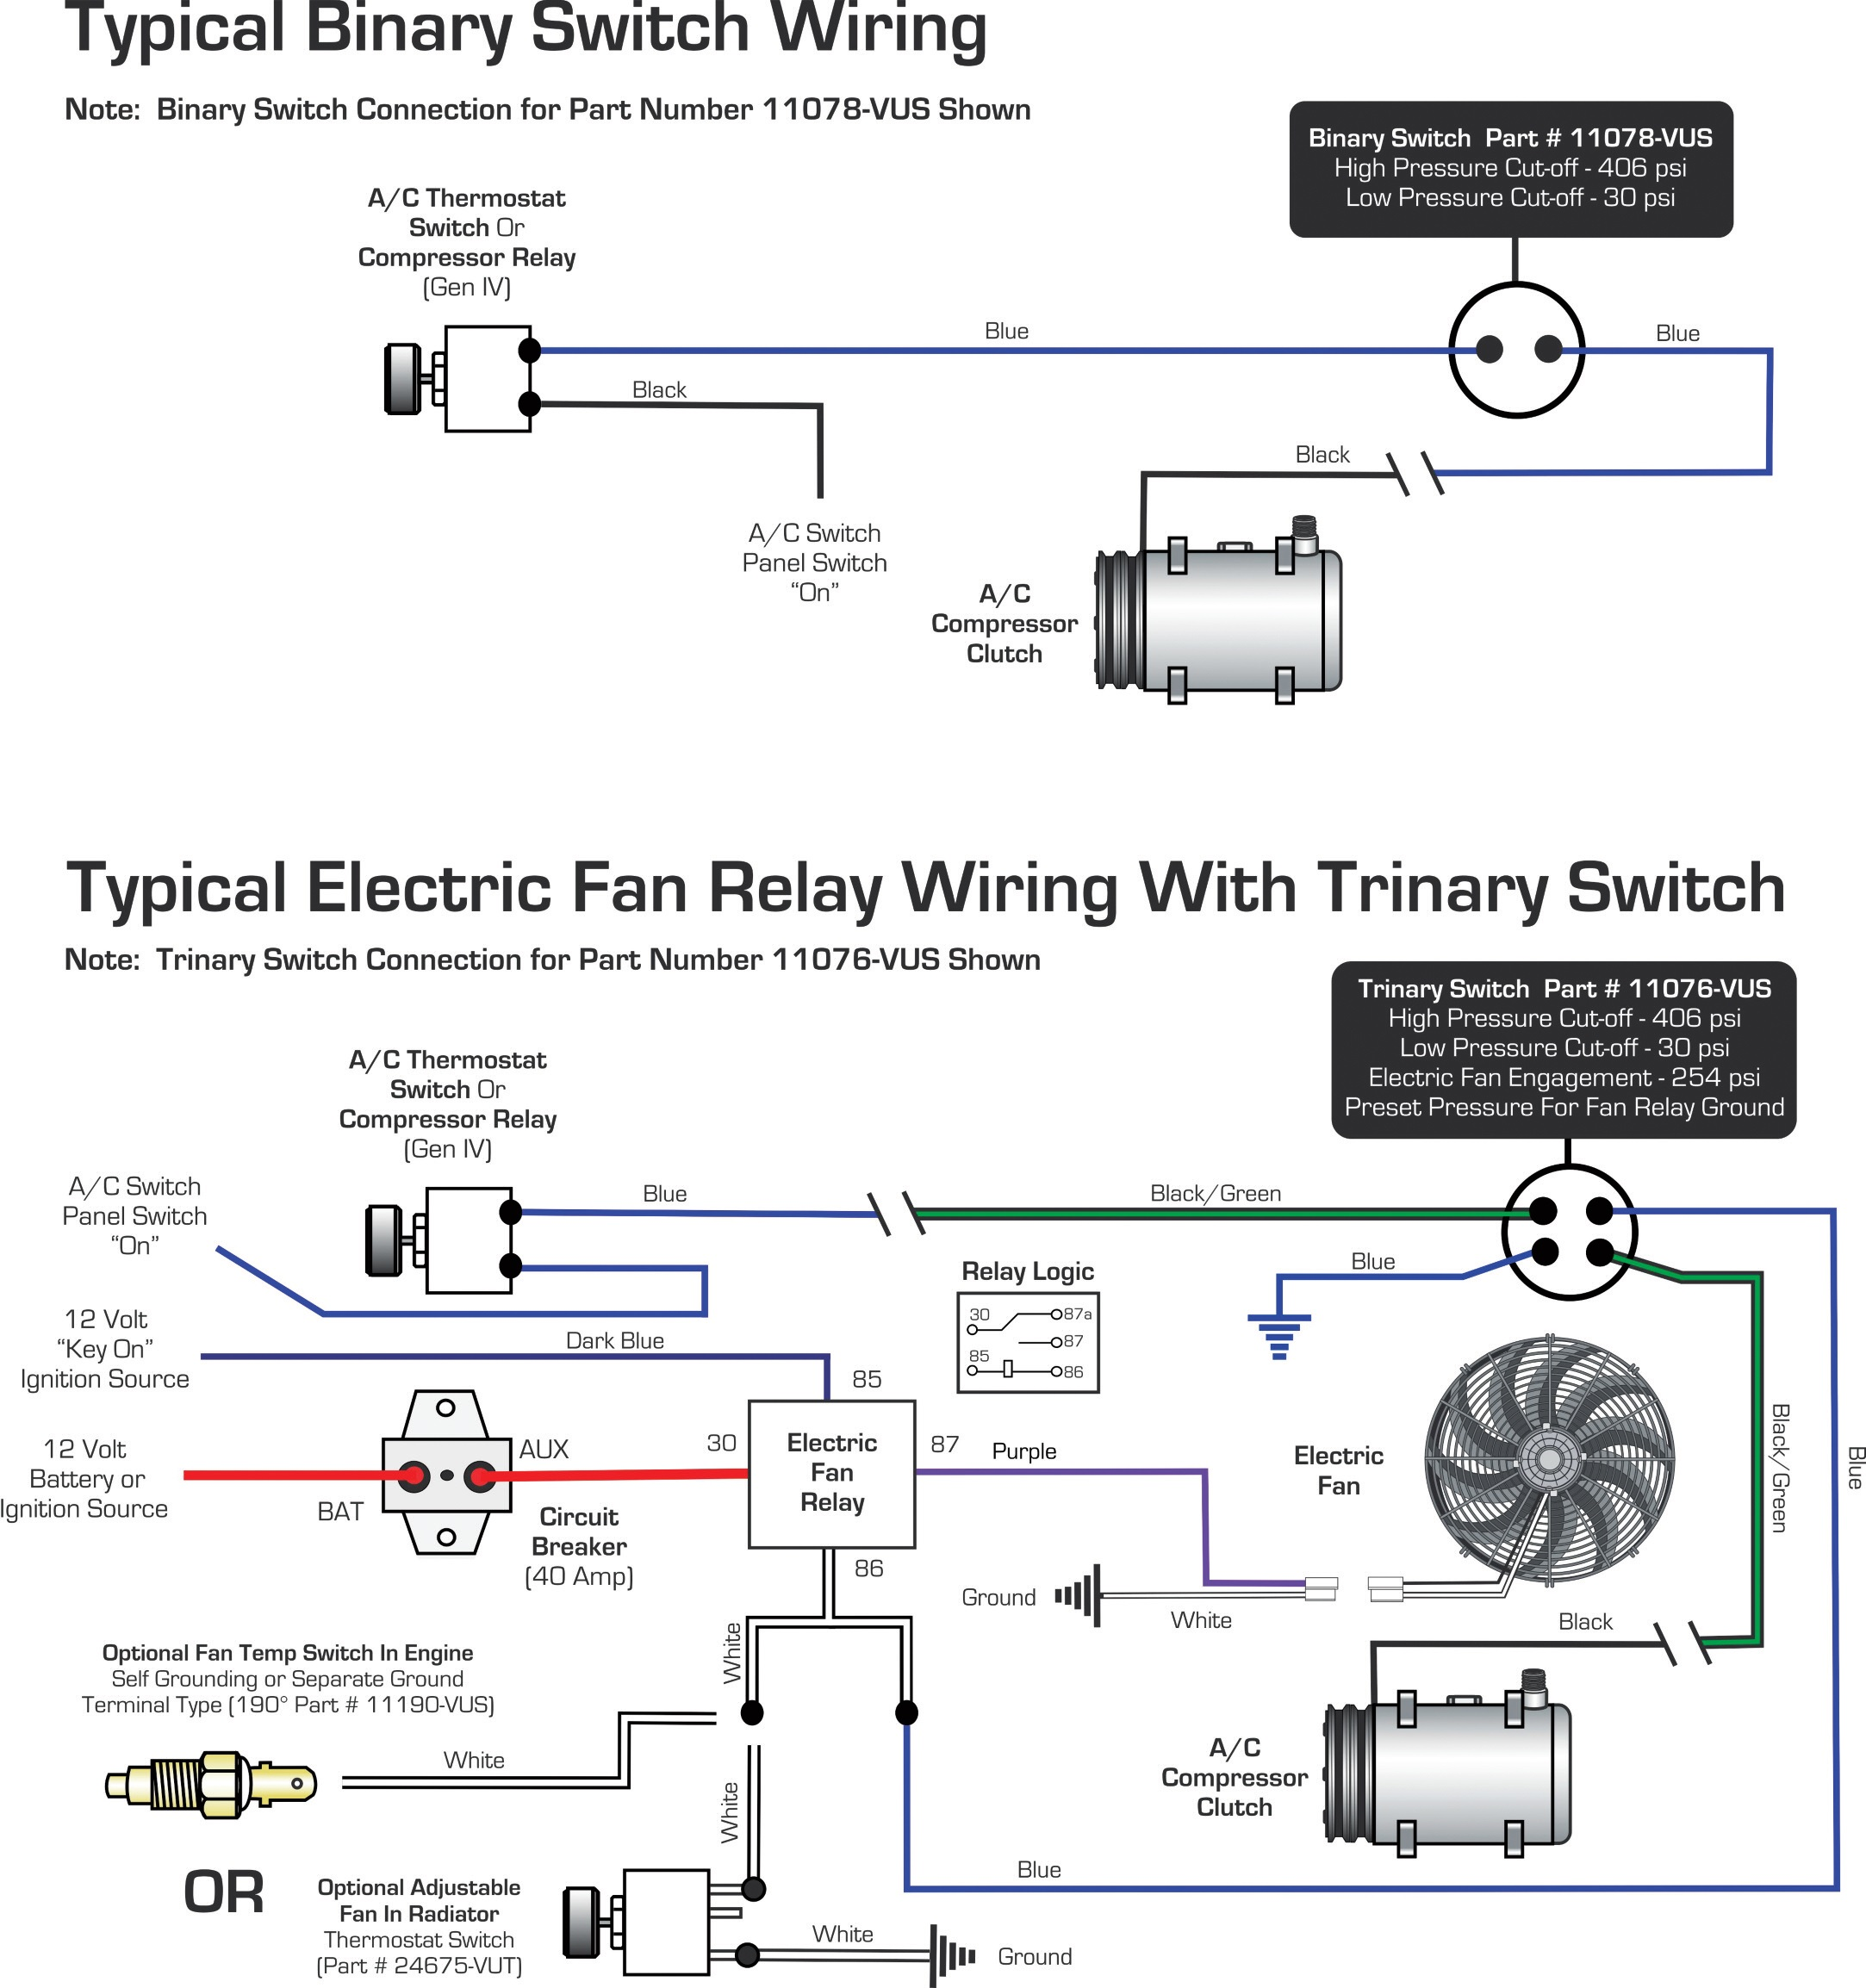 1 80 vintage air blog archive wiring diagrams binary switch trinary 12 volt switch panel wiring diagram at nearapp.co